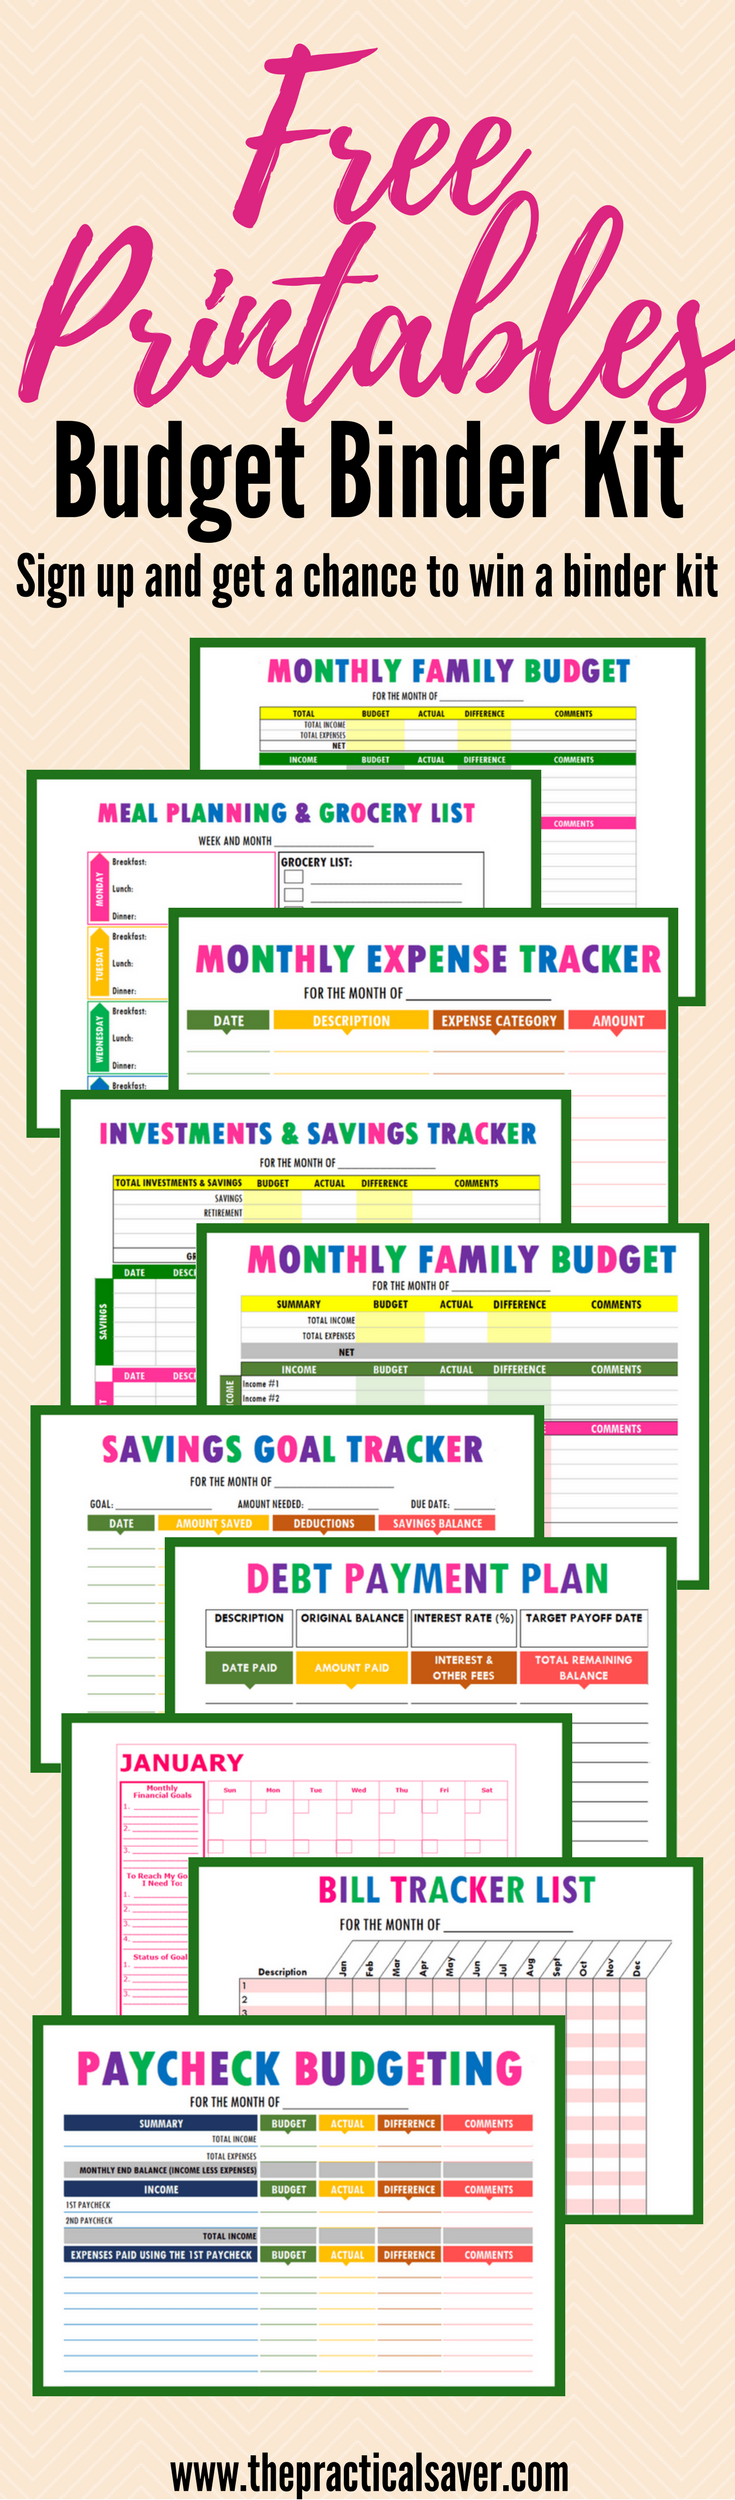 budget binder printables frugal living ideas money saving tips